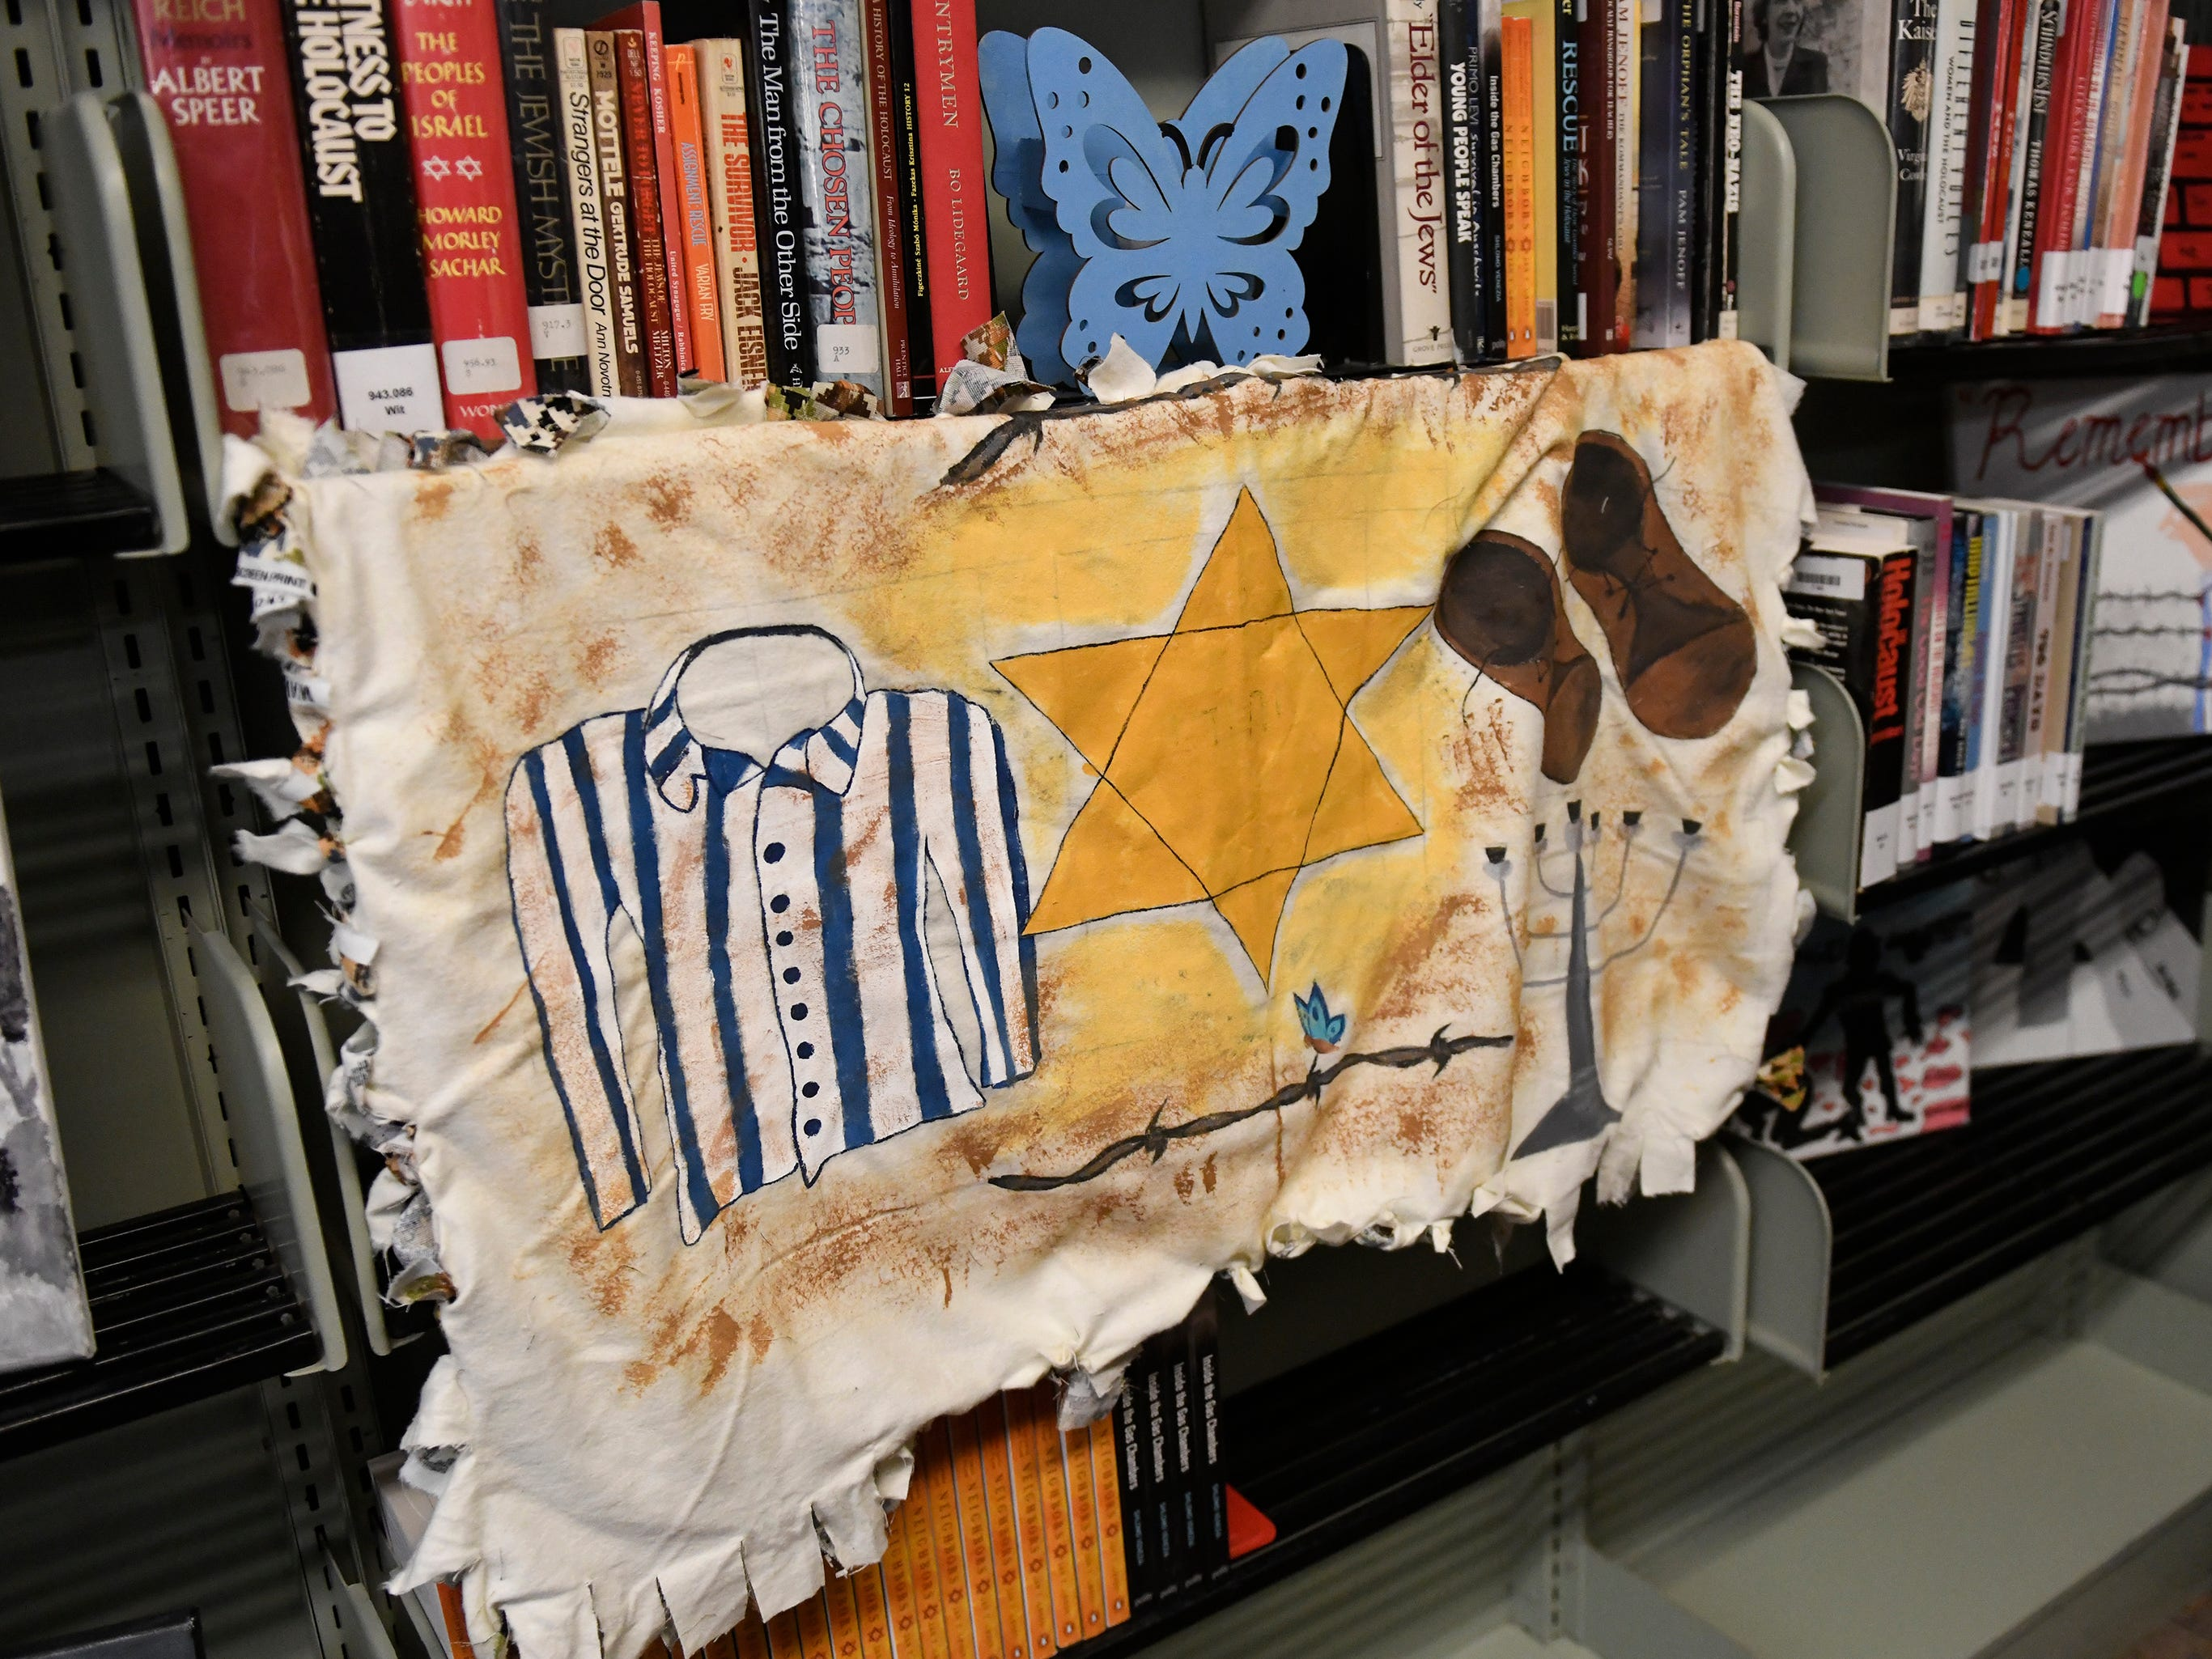 A dedication at Vineland High School was held to honor a permanent exhibit for Vineland Holocaust survivors in the school library on Wednesday, May 8, 2019.